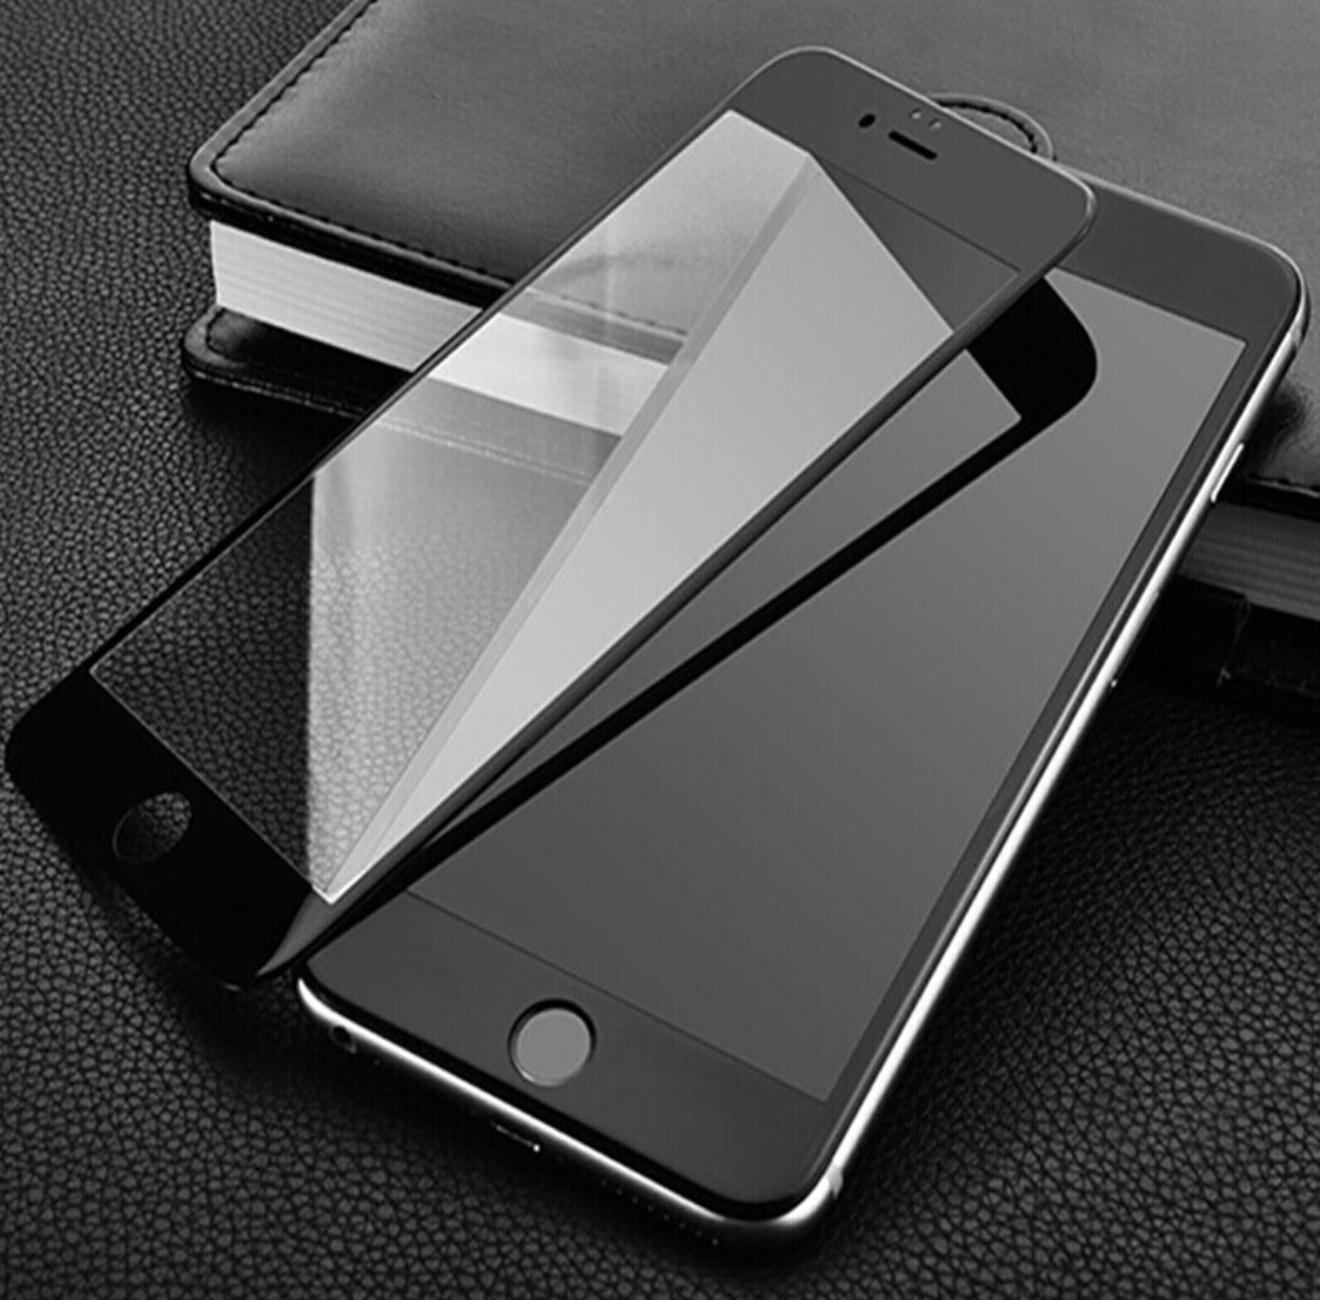 Premium Tempered glass screen protector for iPhone X iPhone XS Max iPhone XR iPhone XS iPhone 8 iPhone 8 Plus...